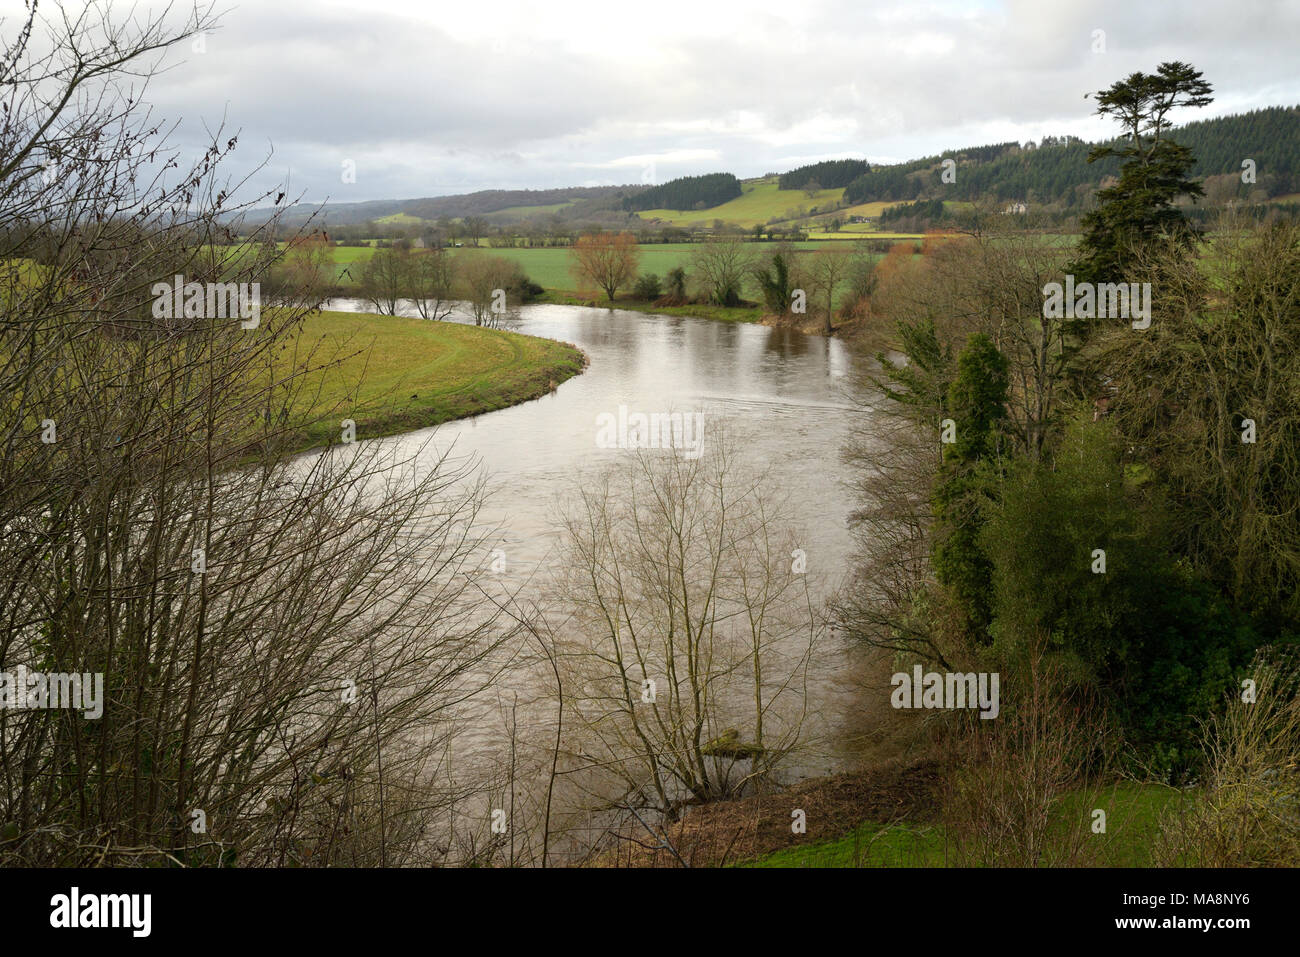 The Warren and River Wye, Hay on Wye viewed from the Radnorshire Bank - Stock Image